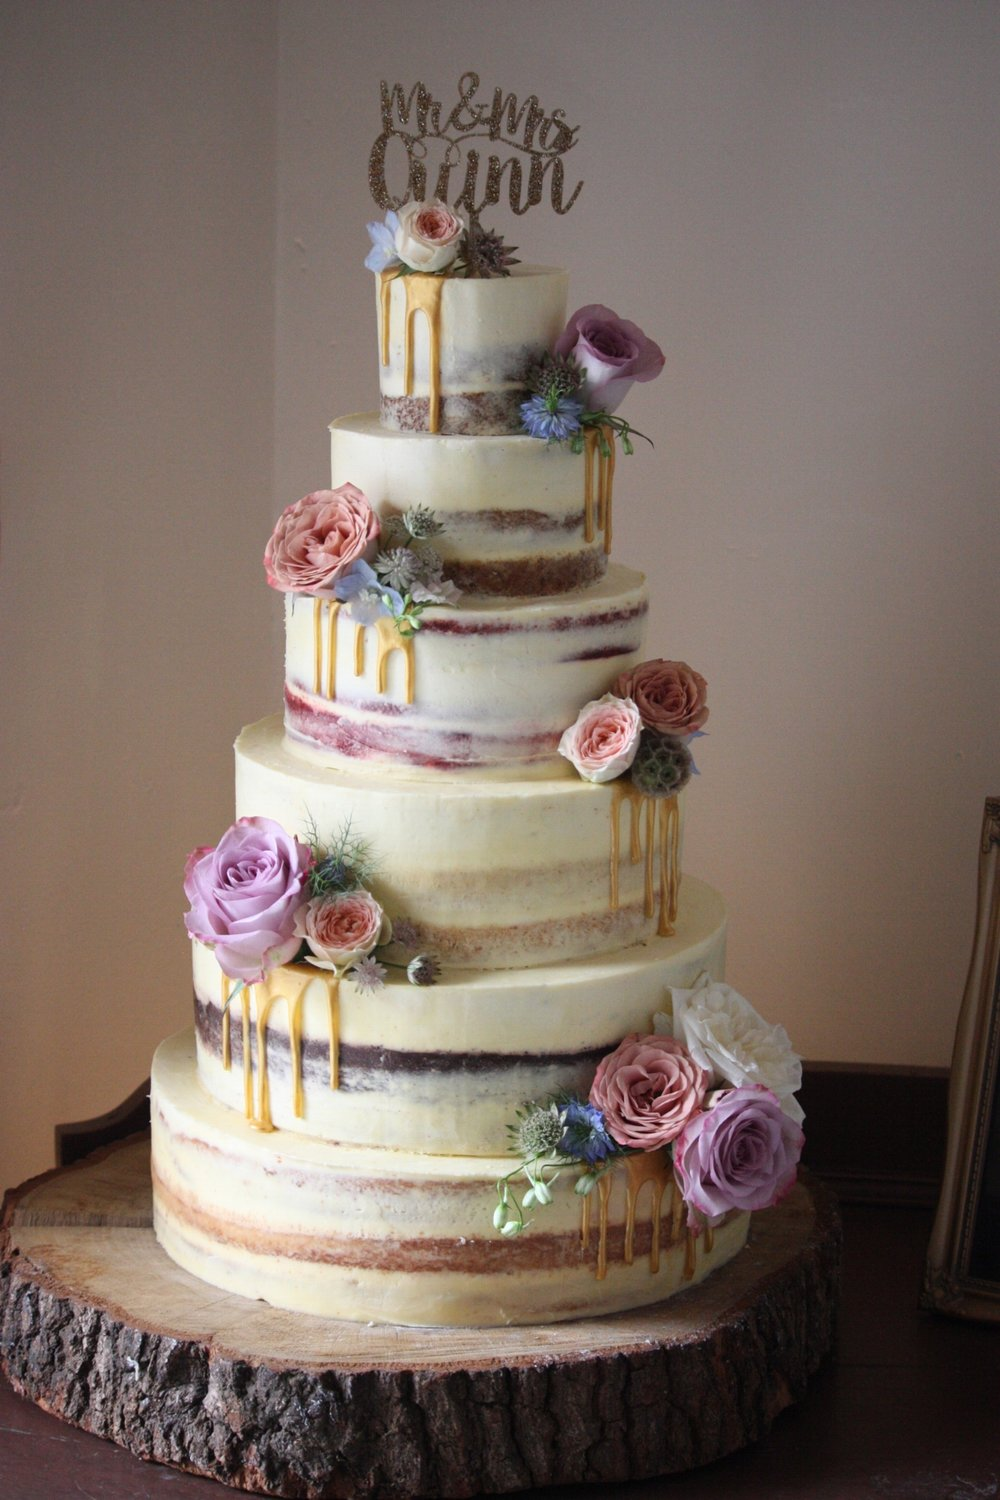 Wedding cake courses in london